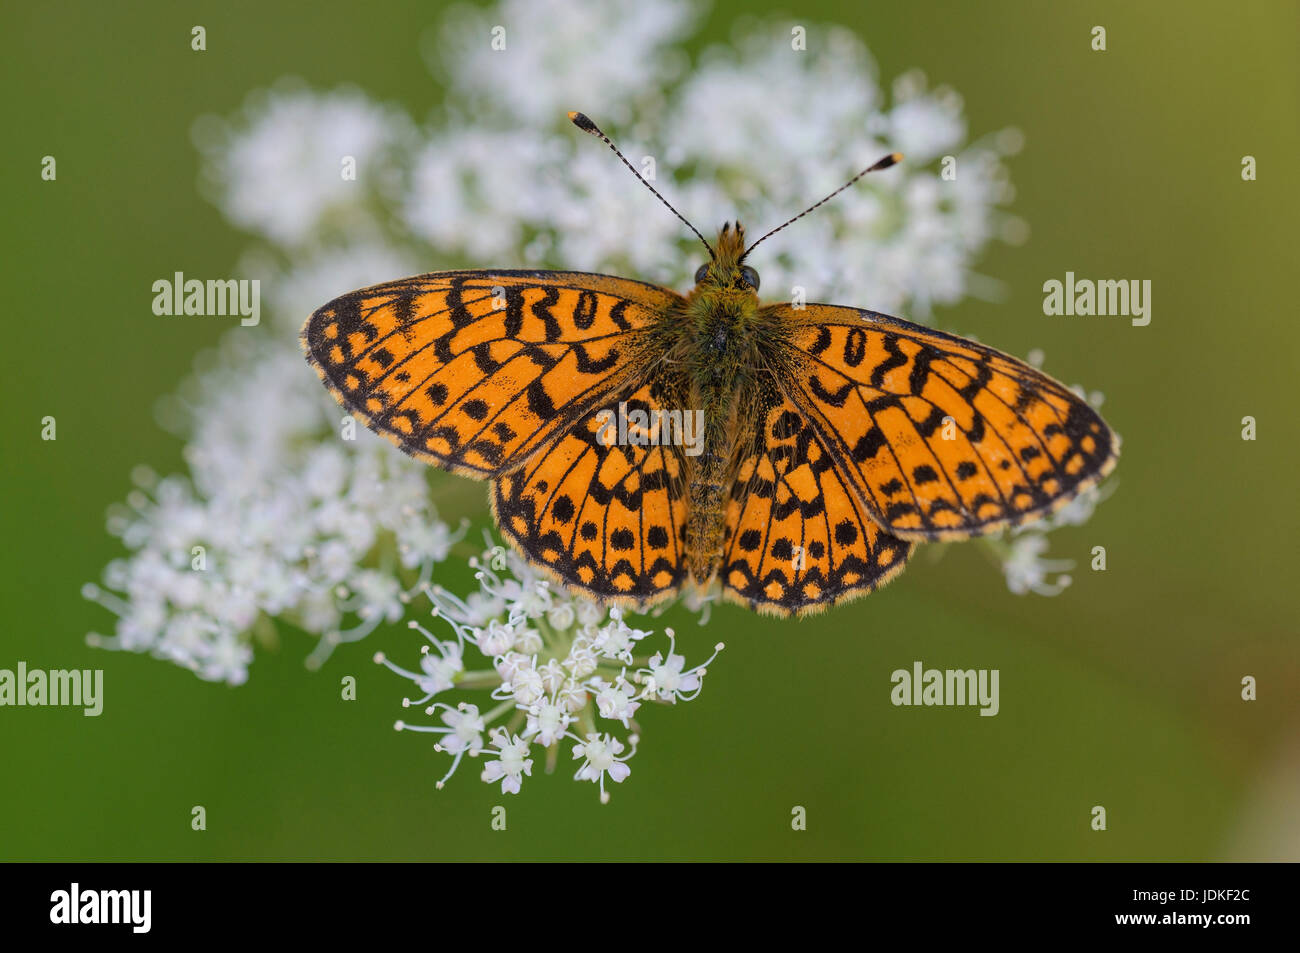 Brown-blotchy mother-of-pearl butterfly sits on a white flower umbel, Braunfleckiger Perlmuttfalter sitzt auf einer - Stock Image